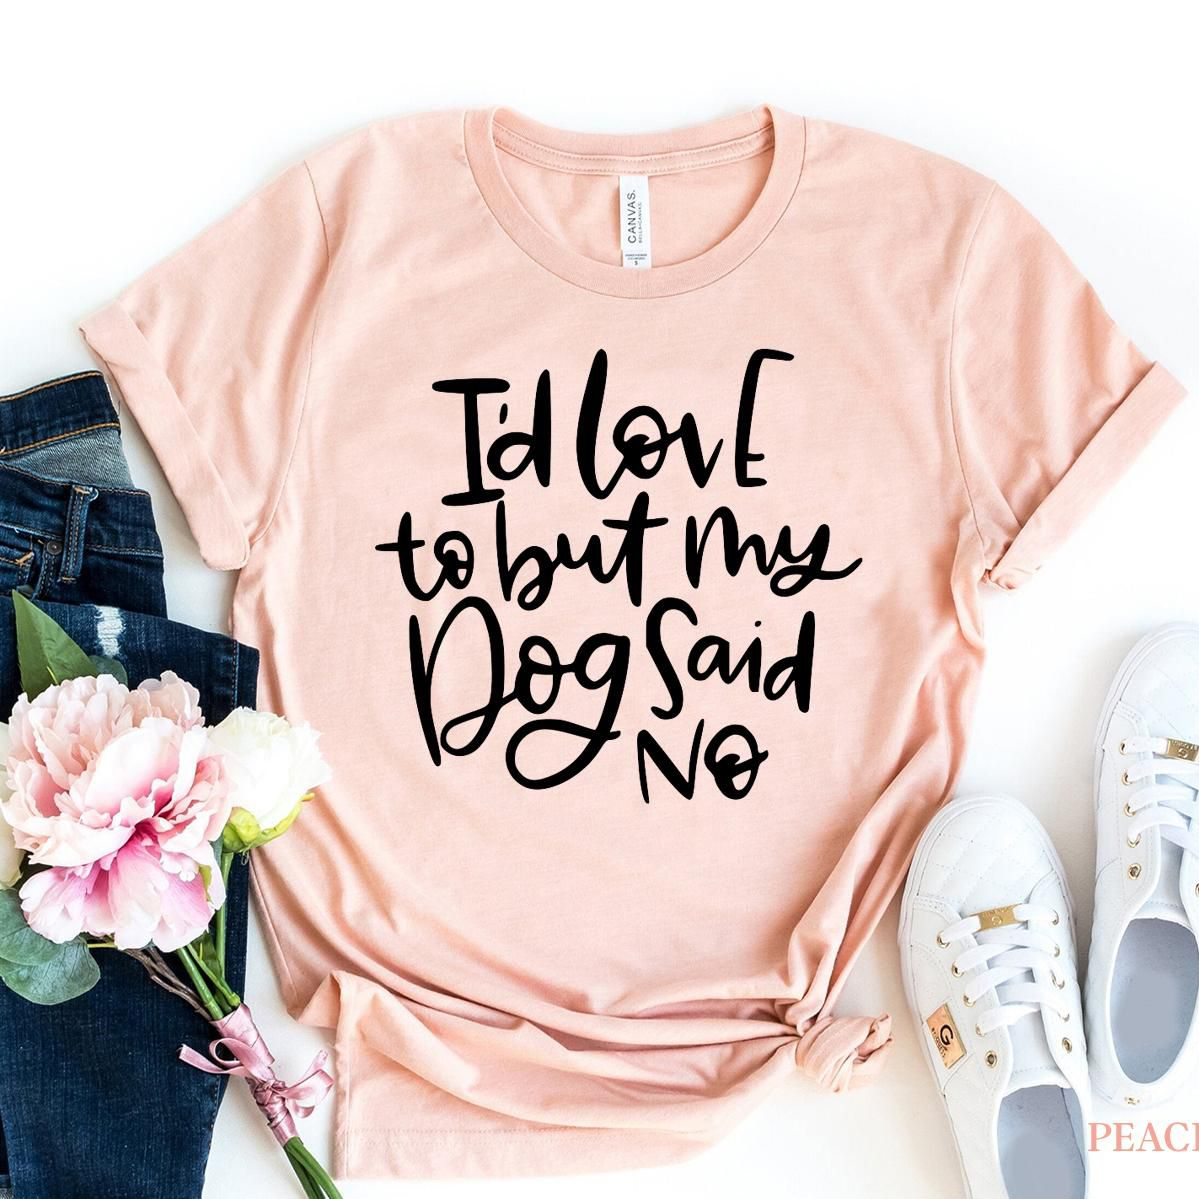 I'd Love To But My Dog Said No T-shirt, Doggy Shirt, Paw Lover Tee, Animal Shirts, Rescuer Gift, Mama Top, Fur Mom Size XXX-Large